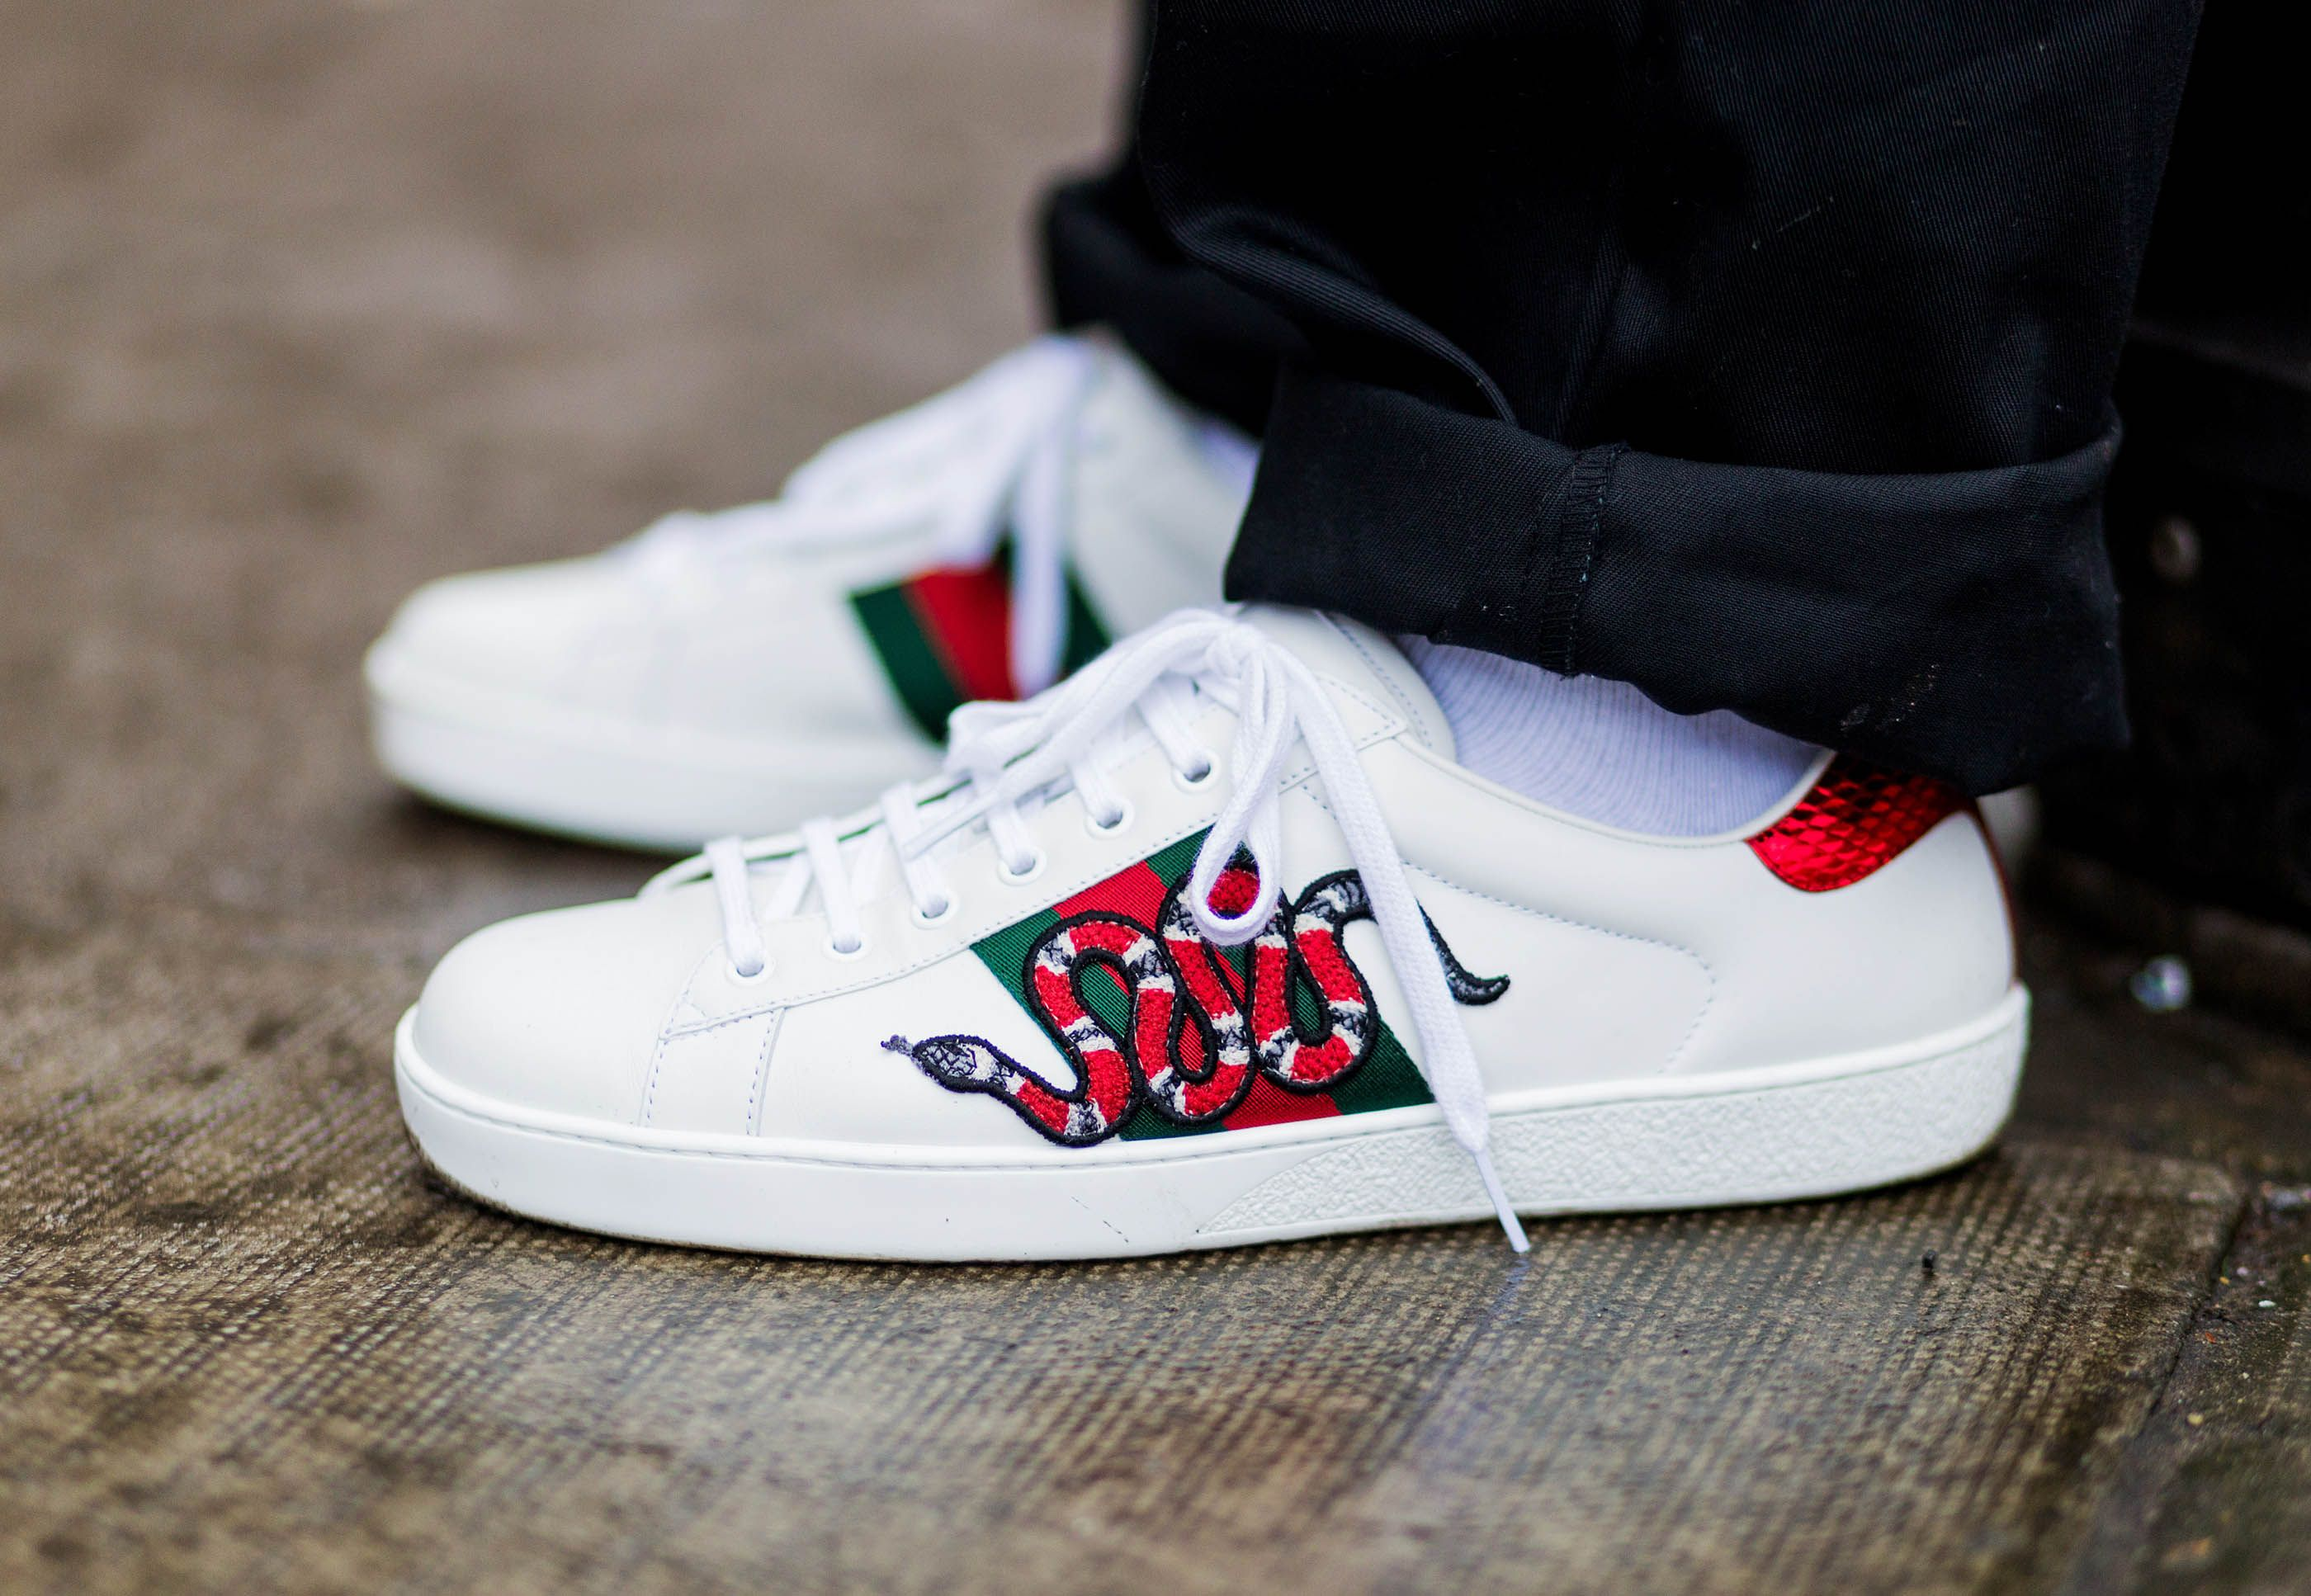 Try On' Gucci's Signature Ace Sneakers